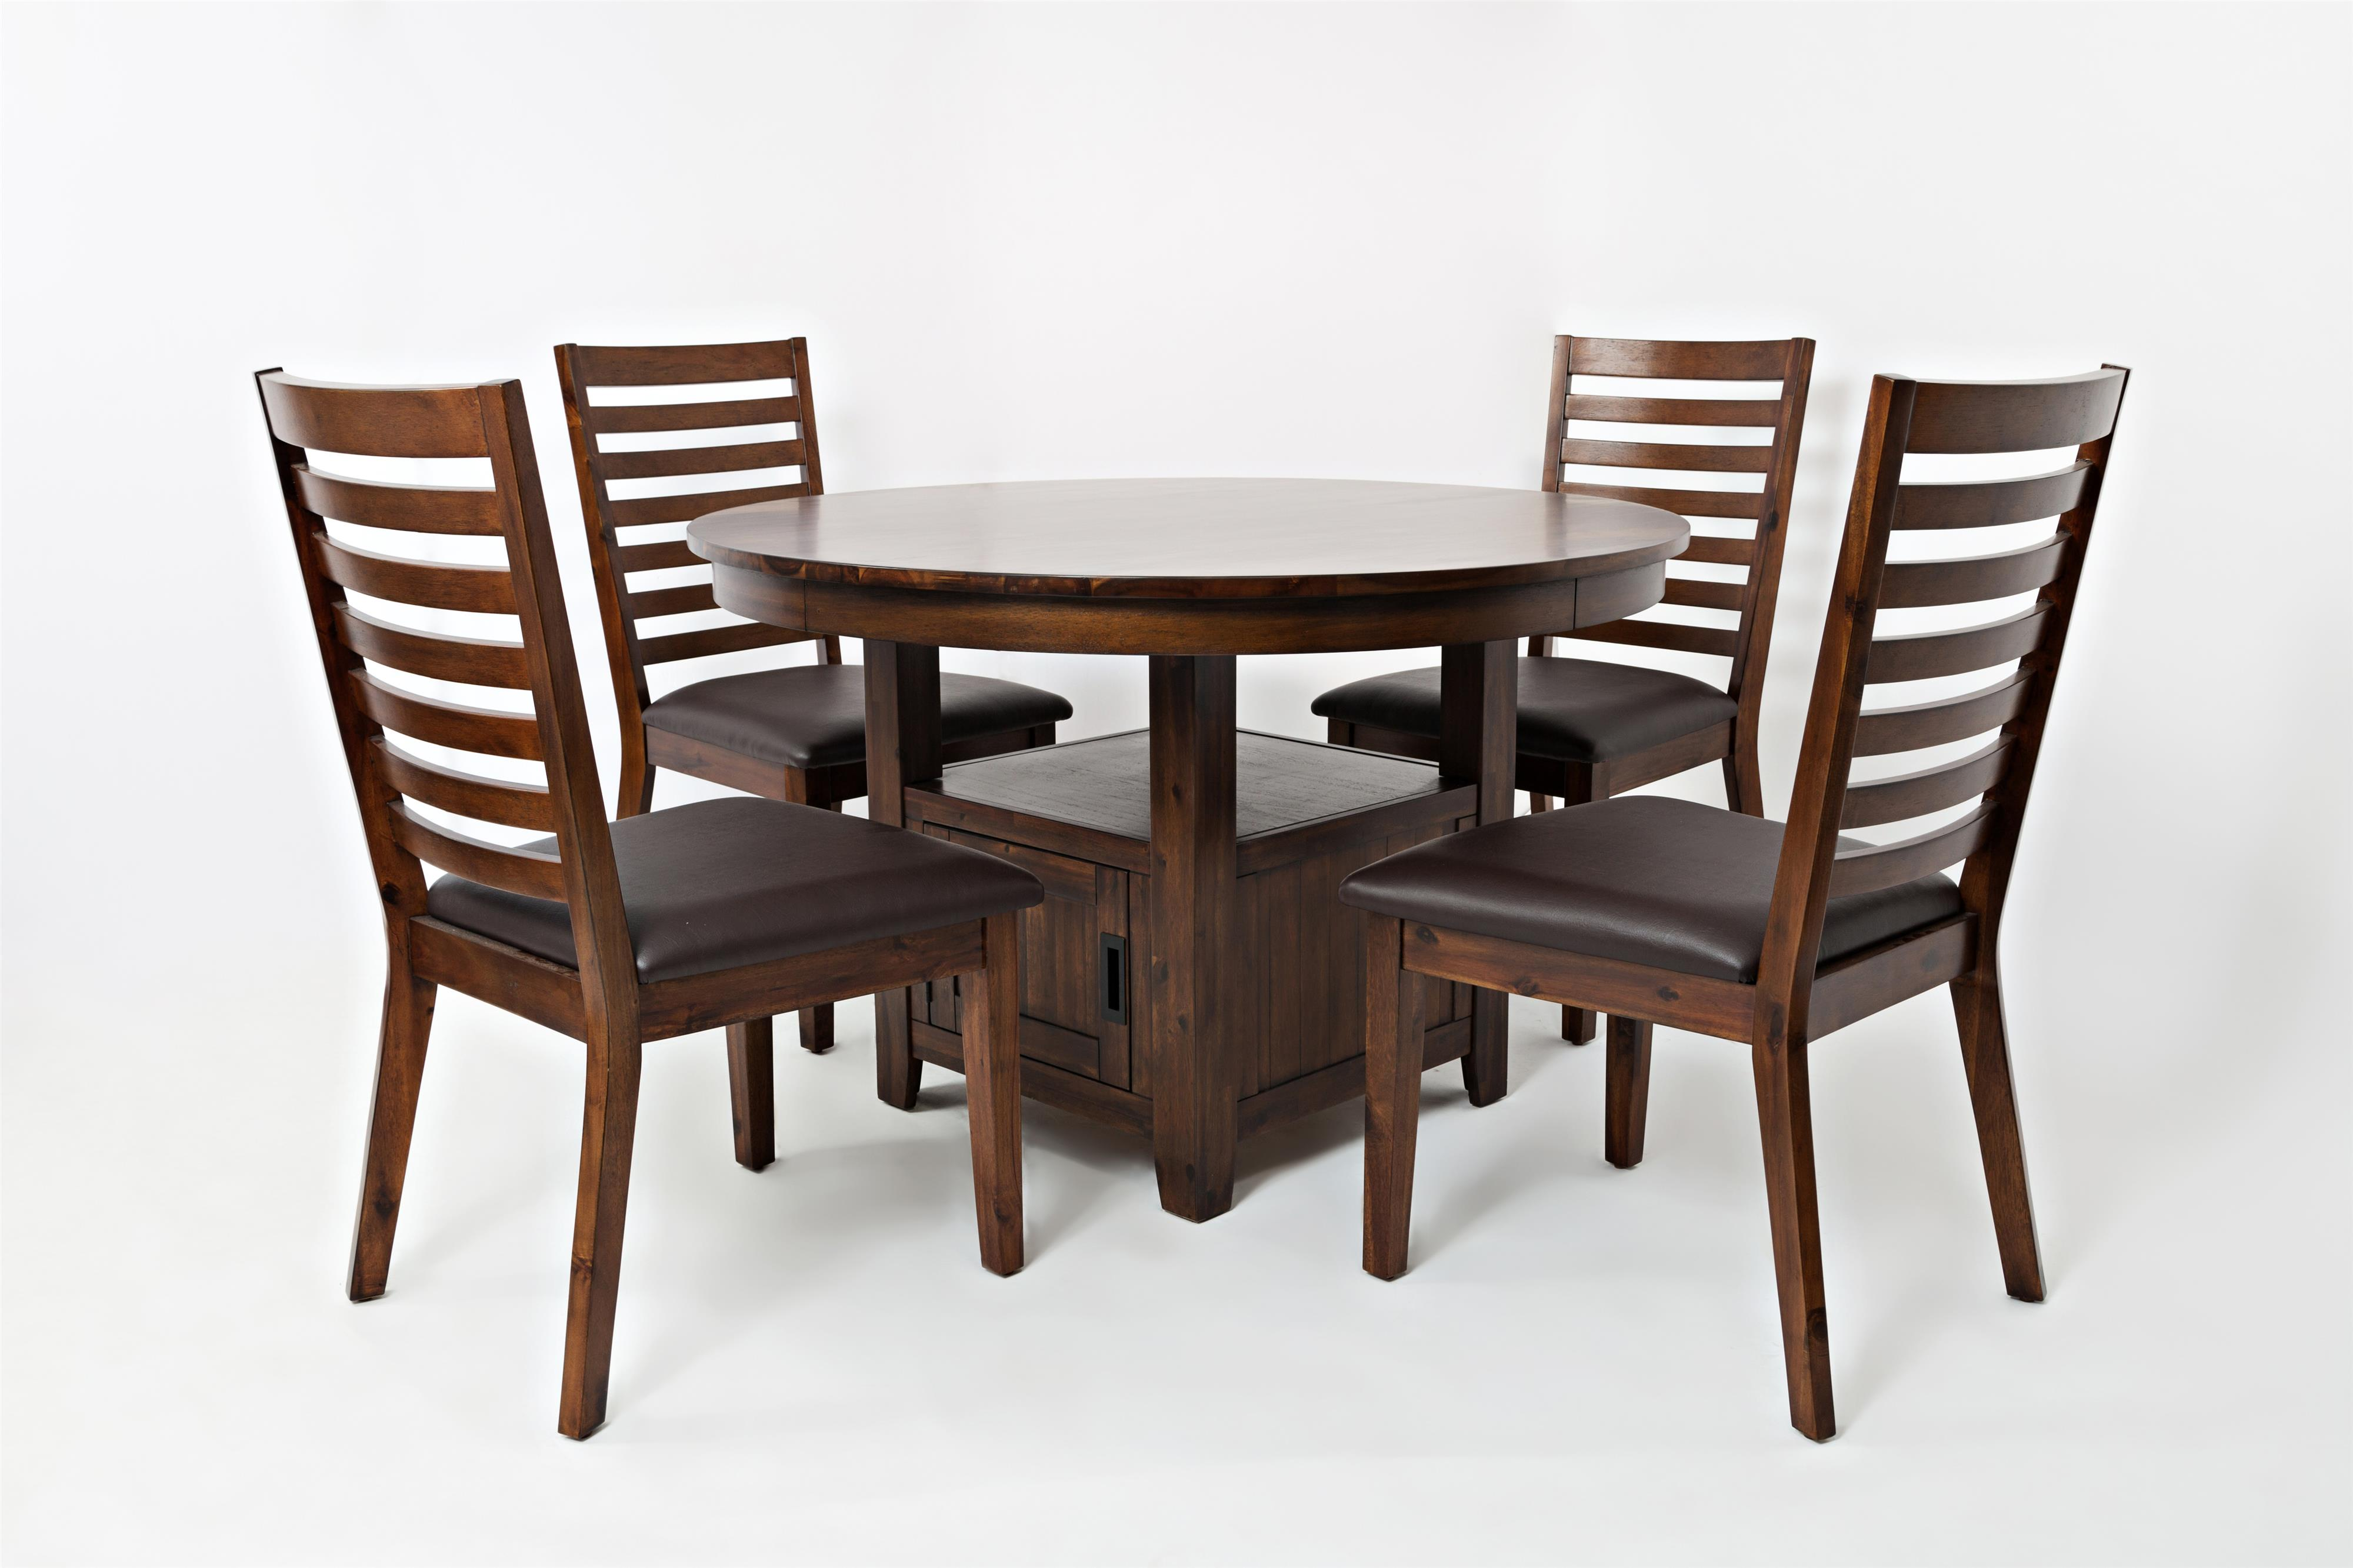 jofran coolidge corner 48 round high low table and chair set furniture and appliancemart. Black Bedroom Furniture Sets. Home Design Ideas